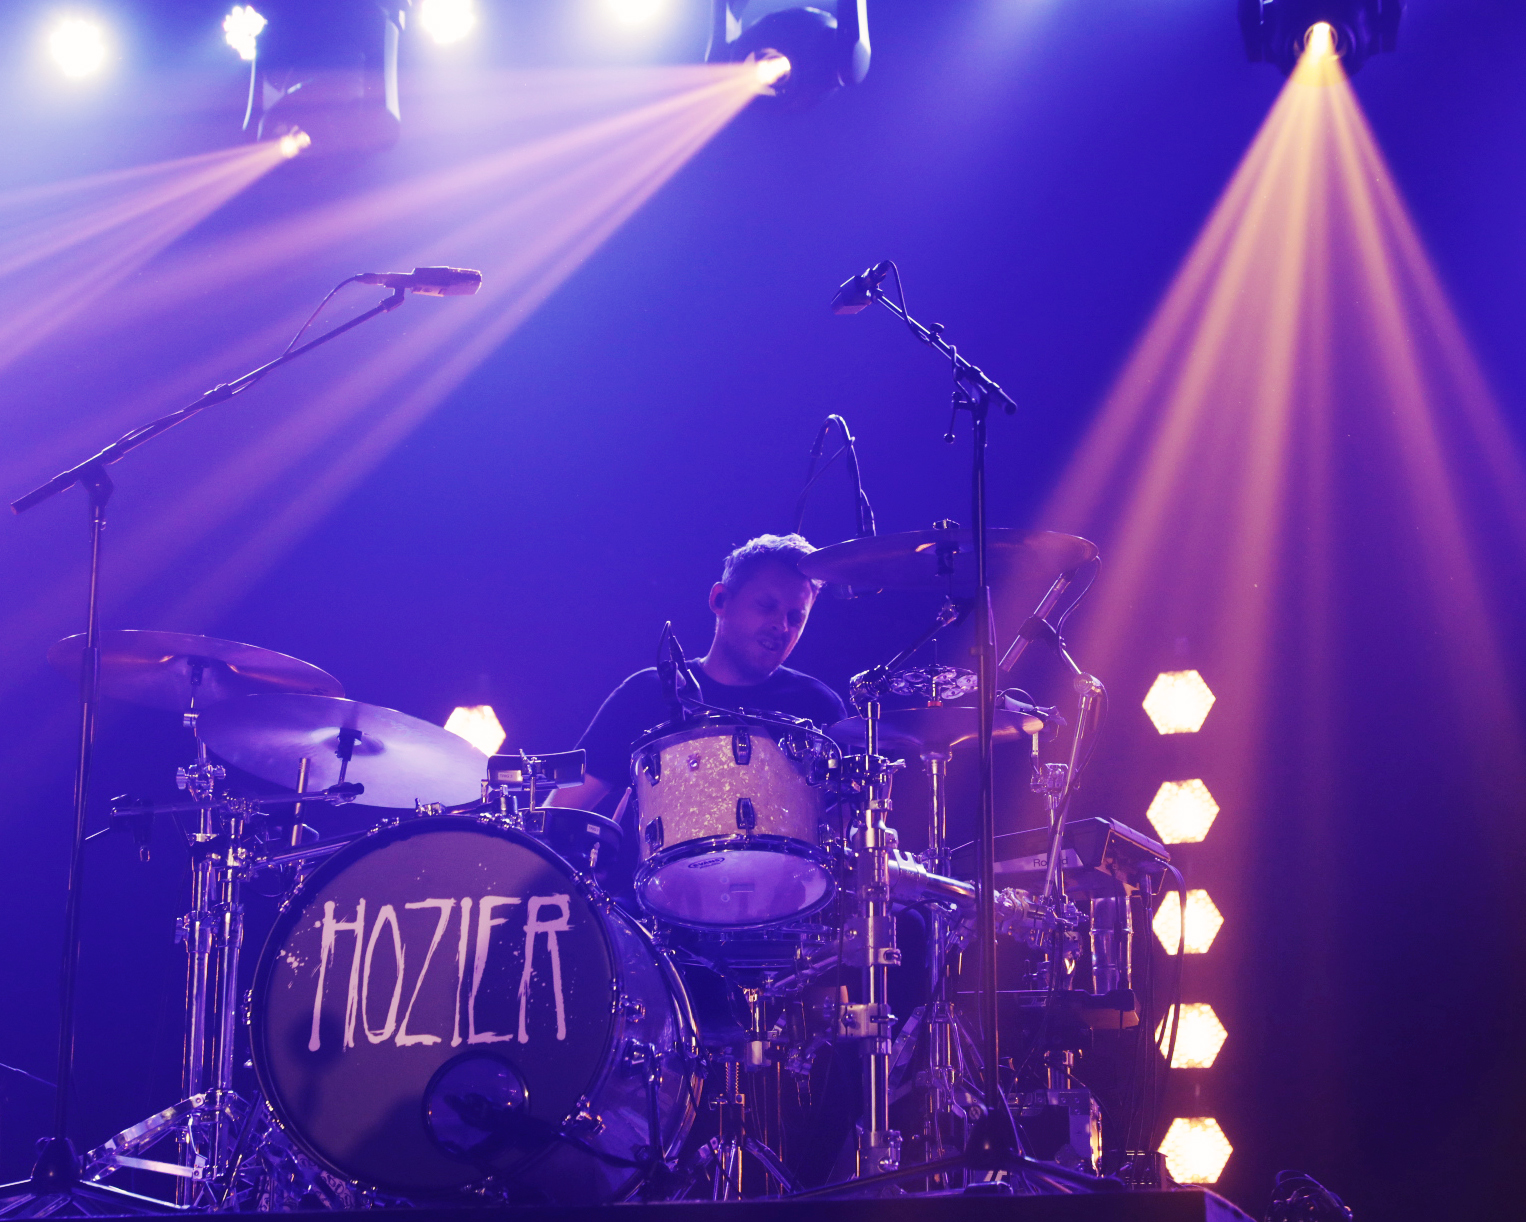 Drummer for Hozier keeping the beat. Photo: @Lmsorenson